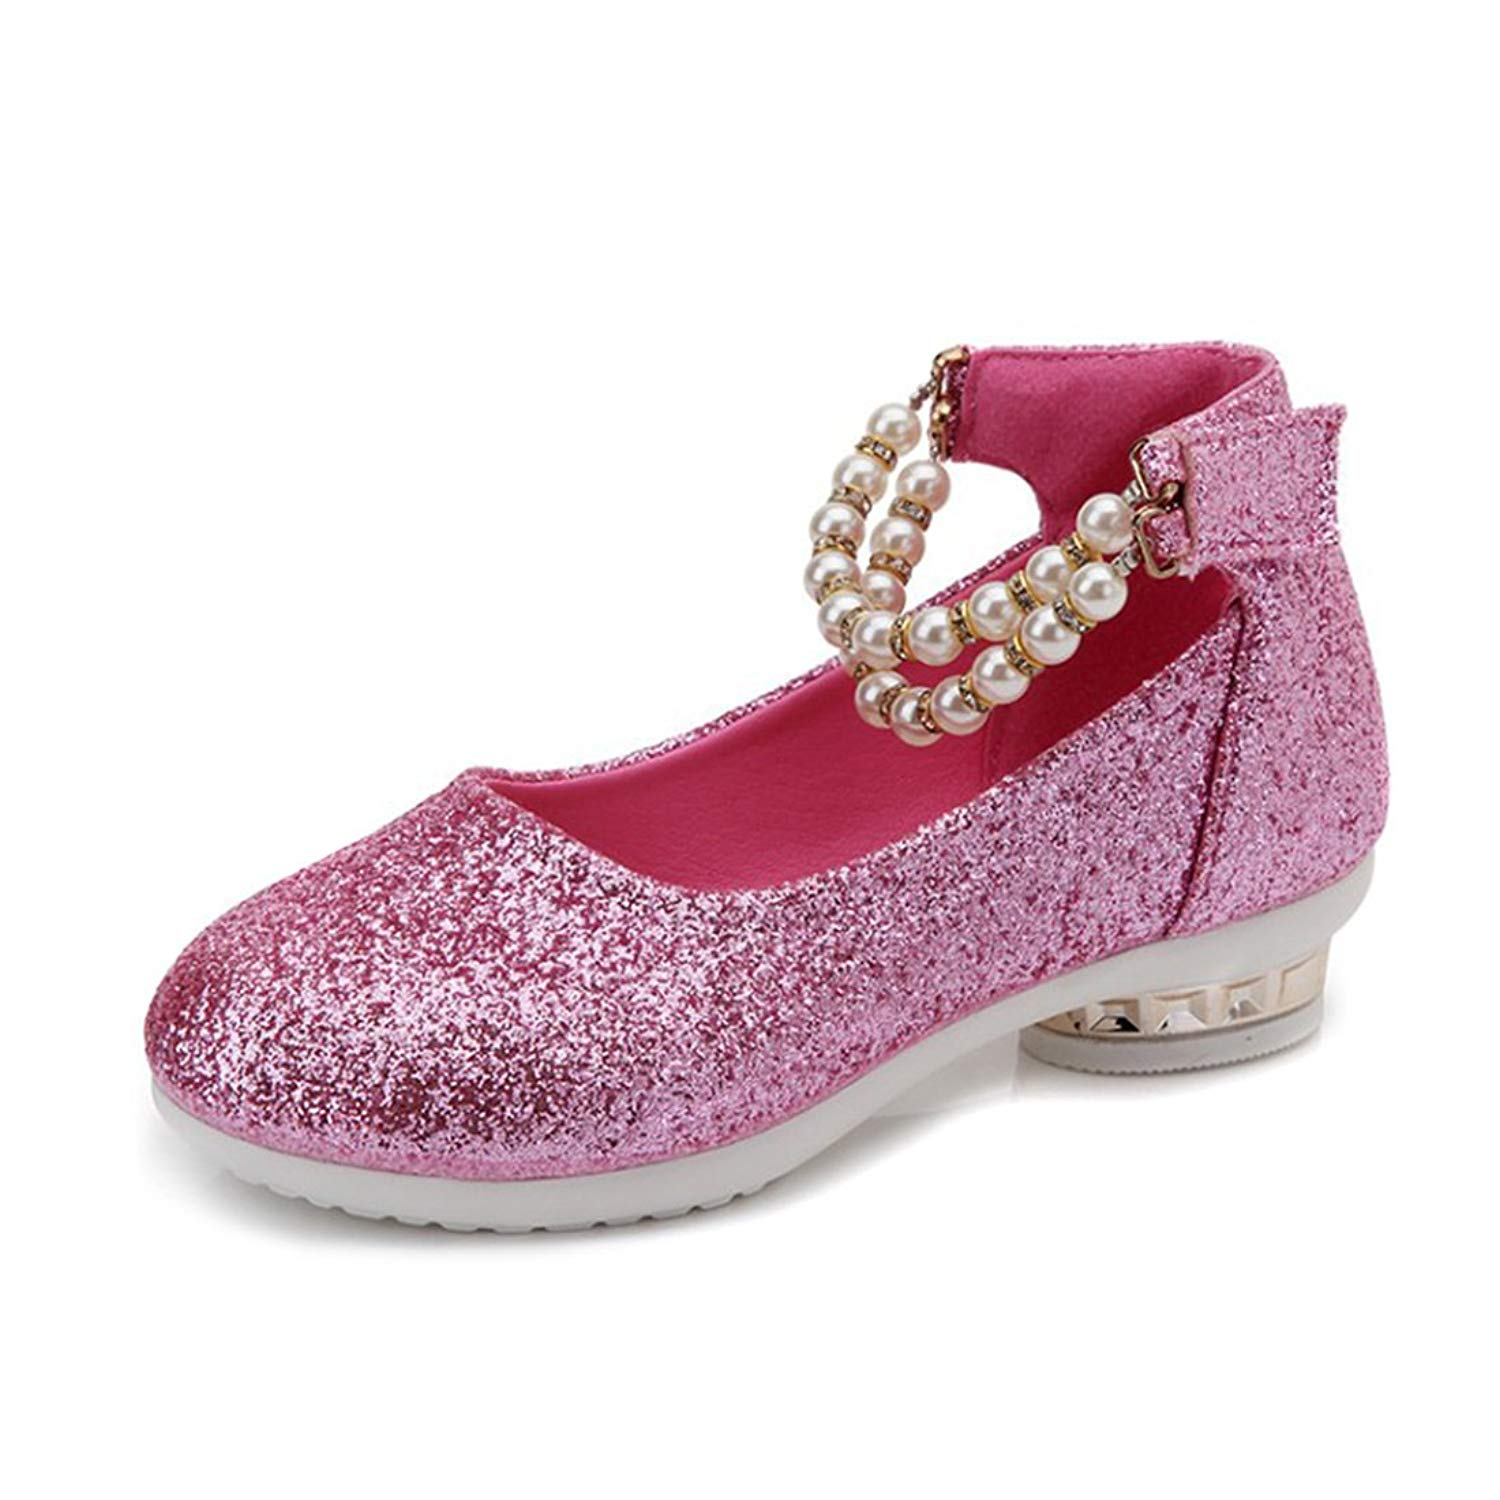 YIBLBOX Girls Kids Toddler Dress up Cosplay Princess Wedding Shoes Mary Jane Low Heel Shoes for Girls